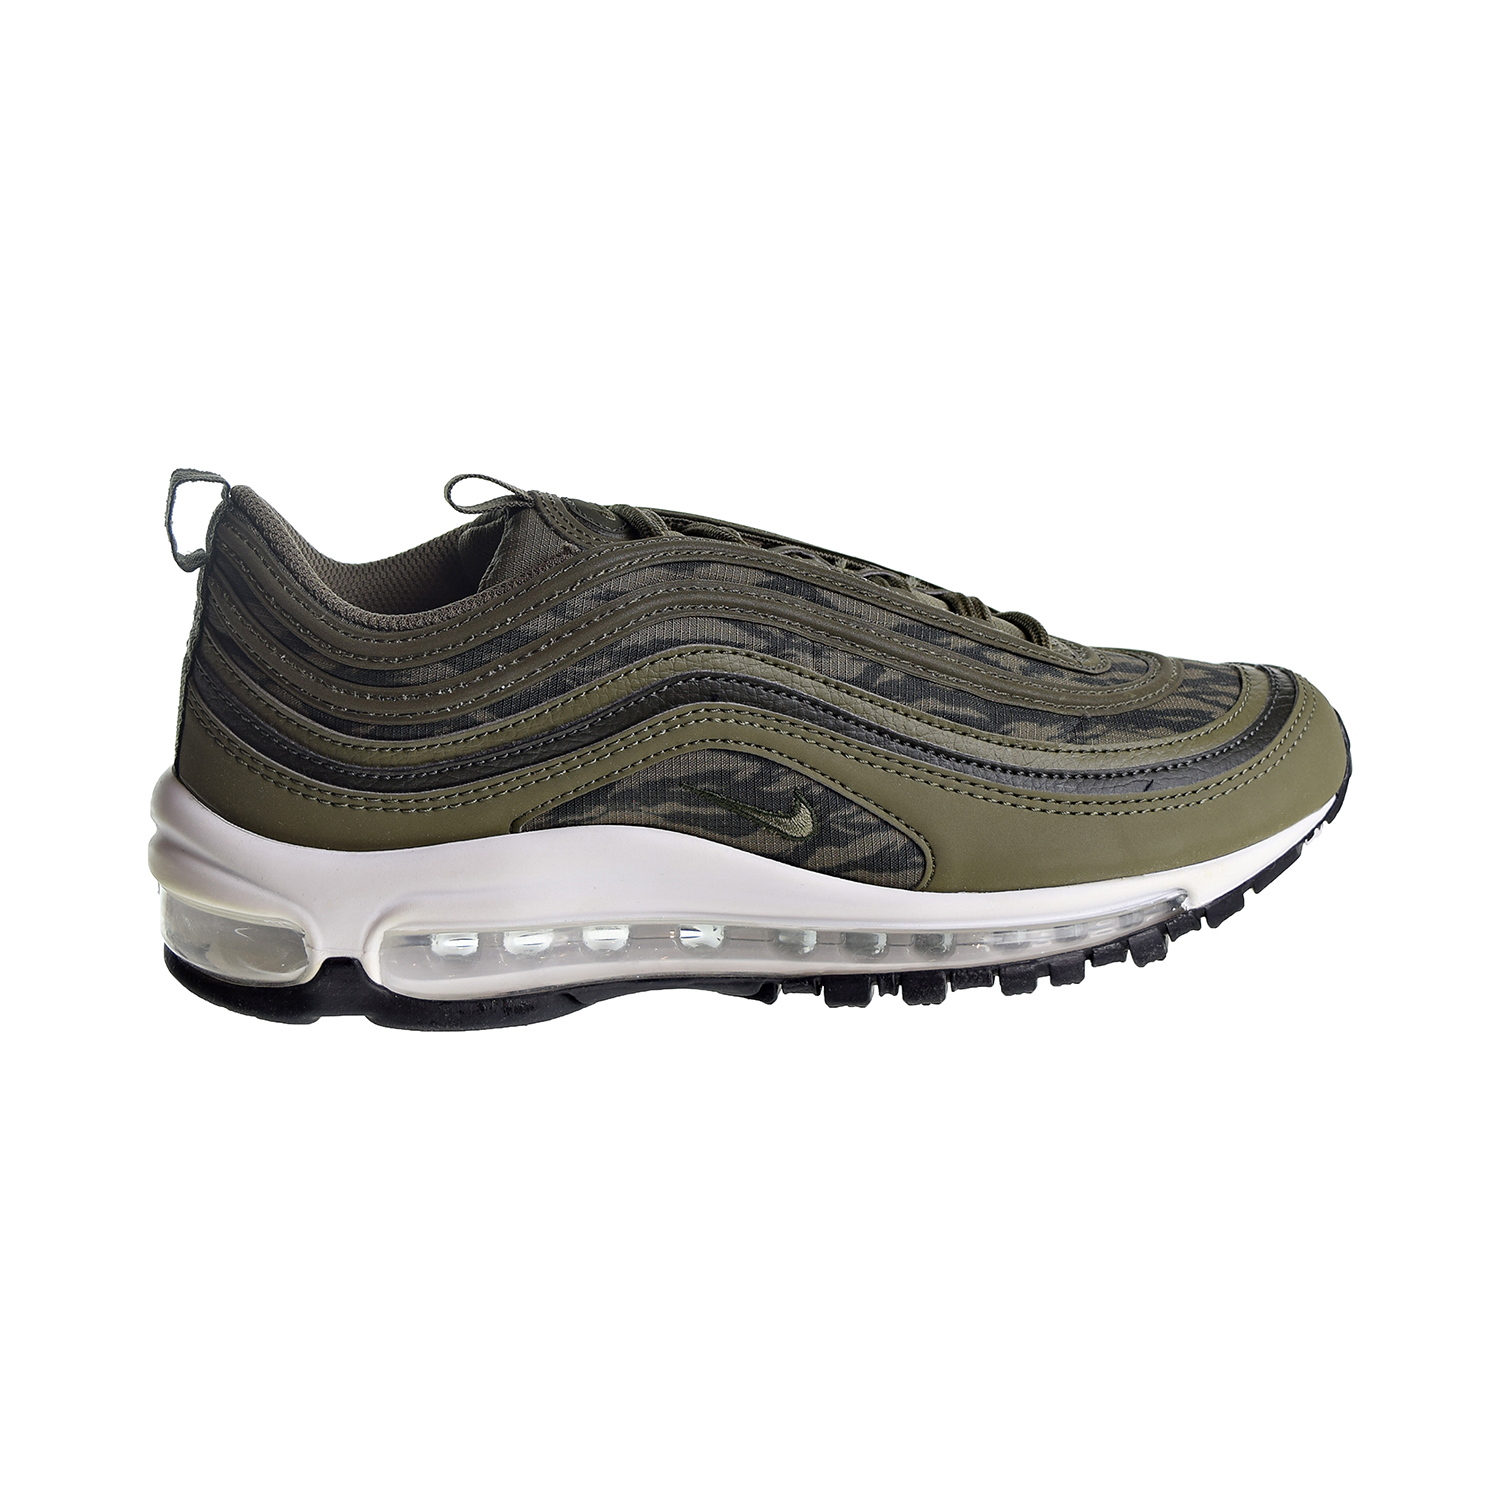 premium selection 81aa1 37ed9 Details about Nike Air Max 97 AOP Mens Shoes Medium Olive AQ4132-200